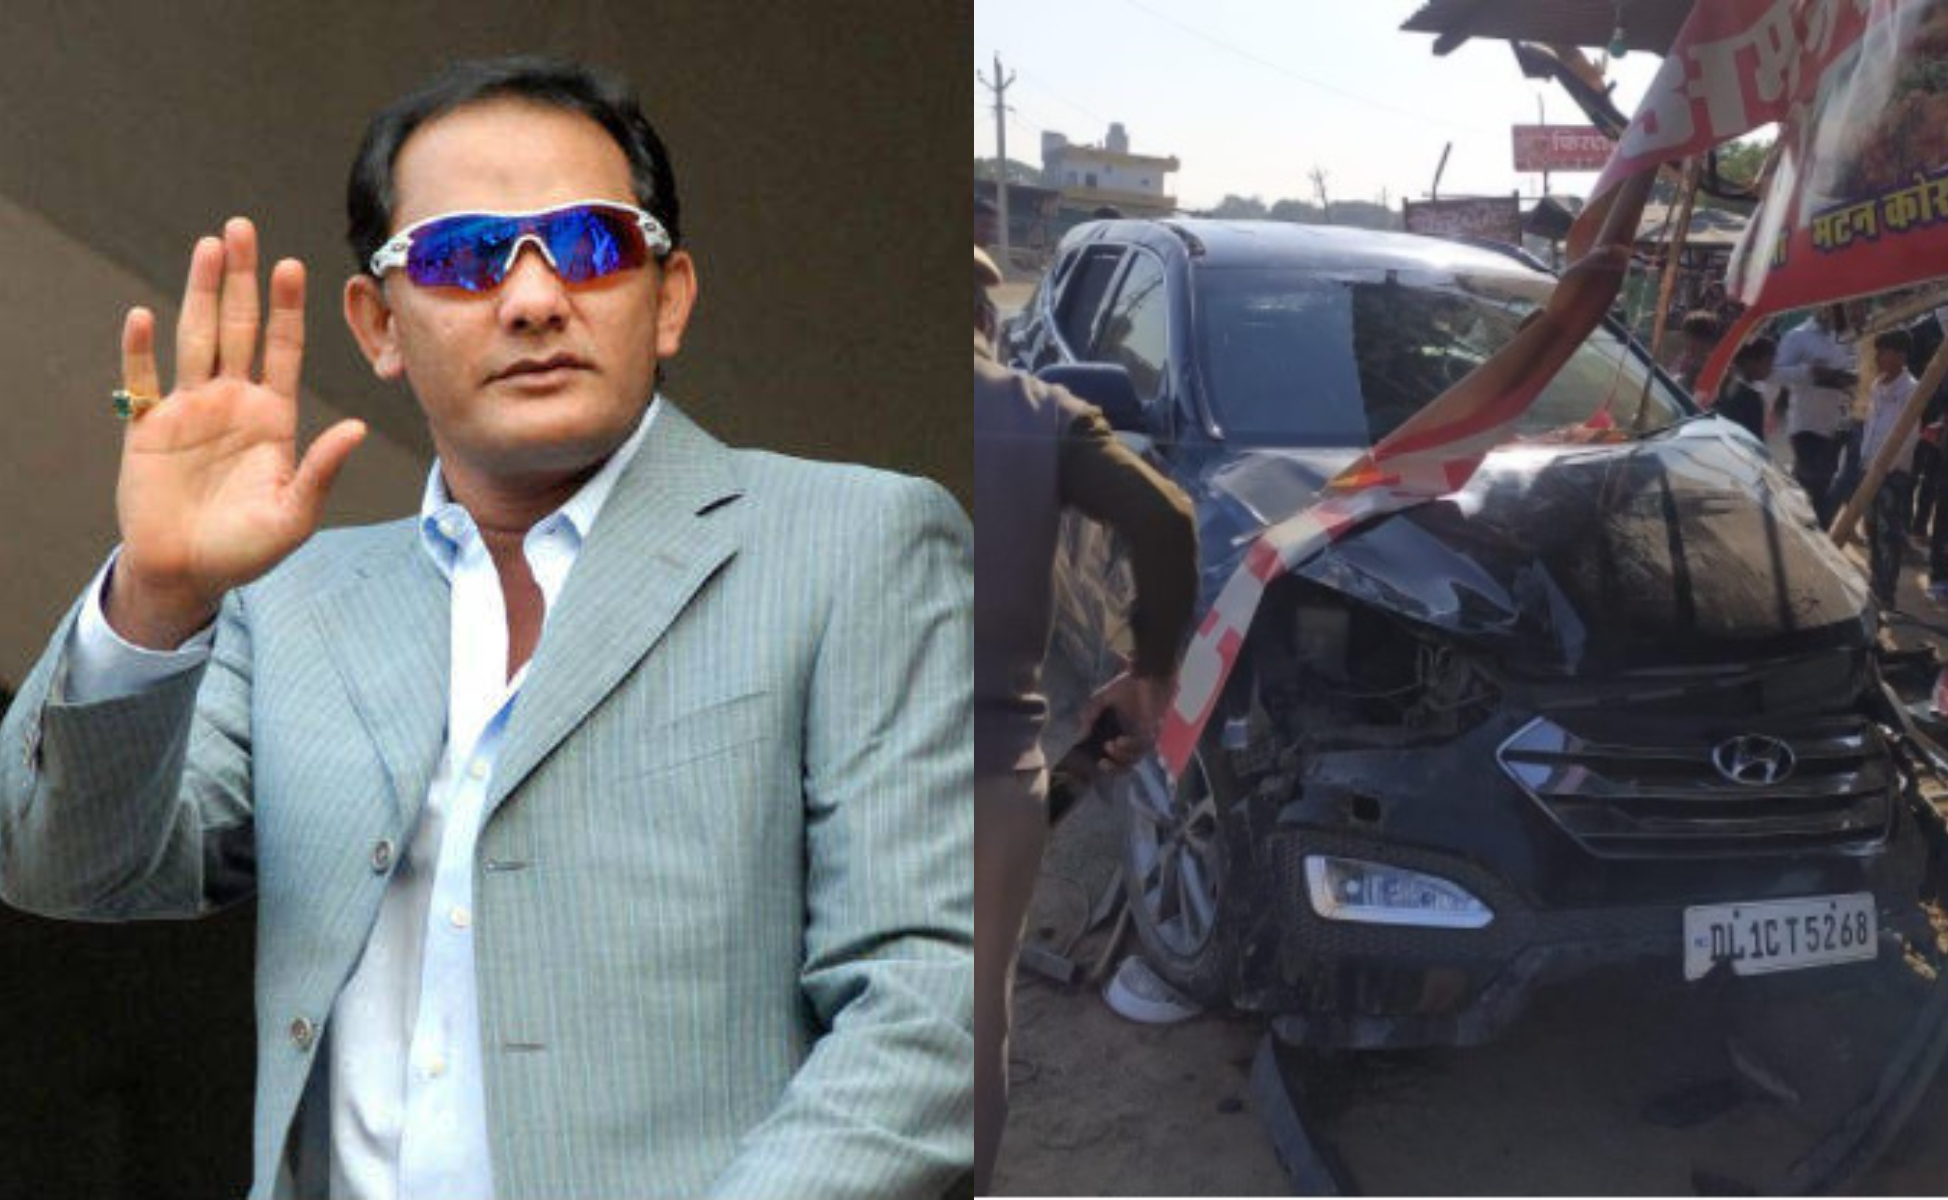 Azharuddin's car met with an accident in Soorwal region of Rajasthan